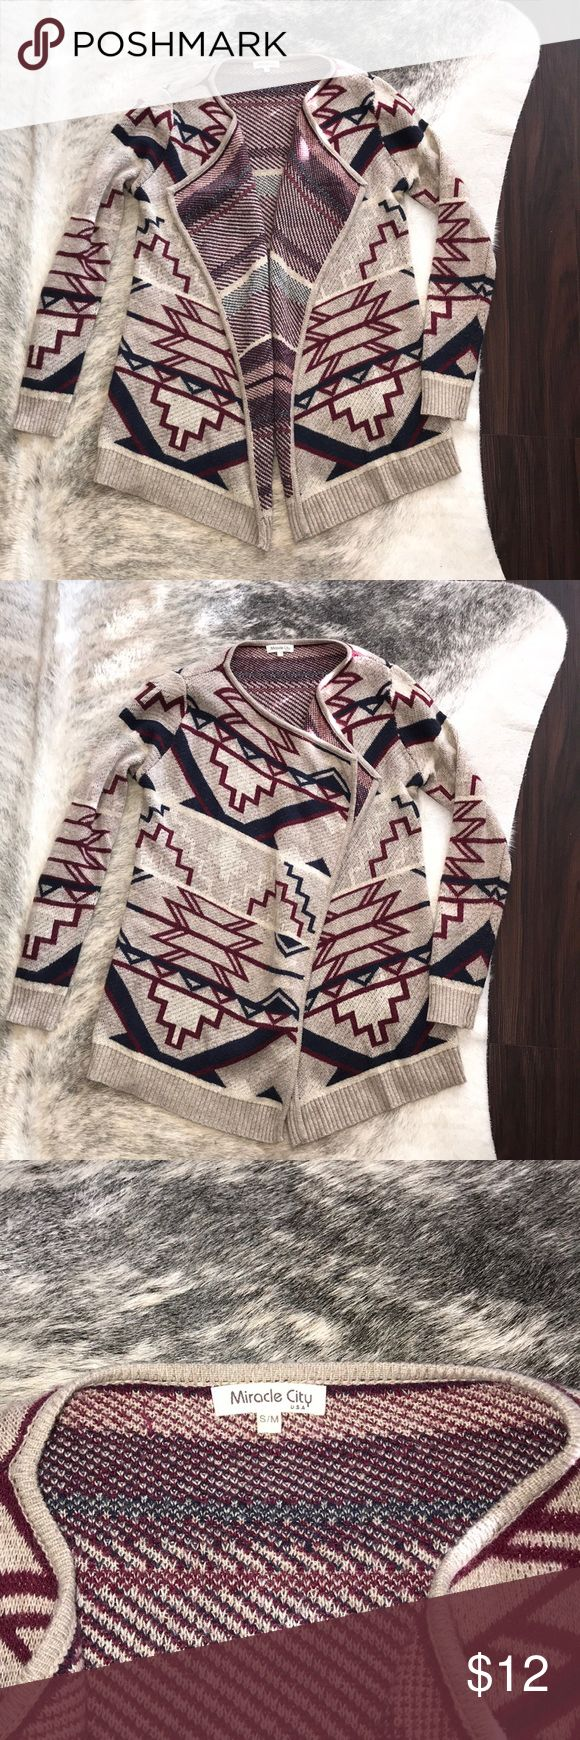 Women's Southwest/Aztec Sweater Cardigan Size S/M Gently used women's Aztec/Southwest style sweater cardigan. Very cute and in great used condition. No visible signs of wear as shown in pictures. Size small/medium. Was a small boutique purchase! Miracle City Sweaters Cardigans